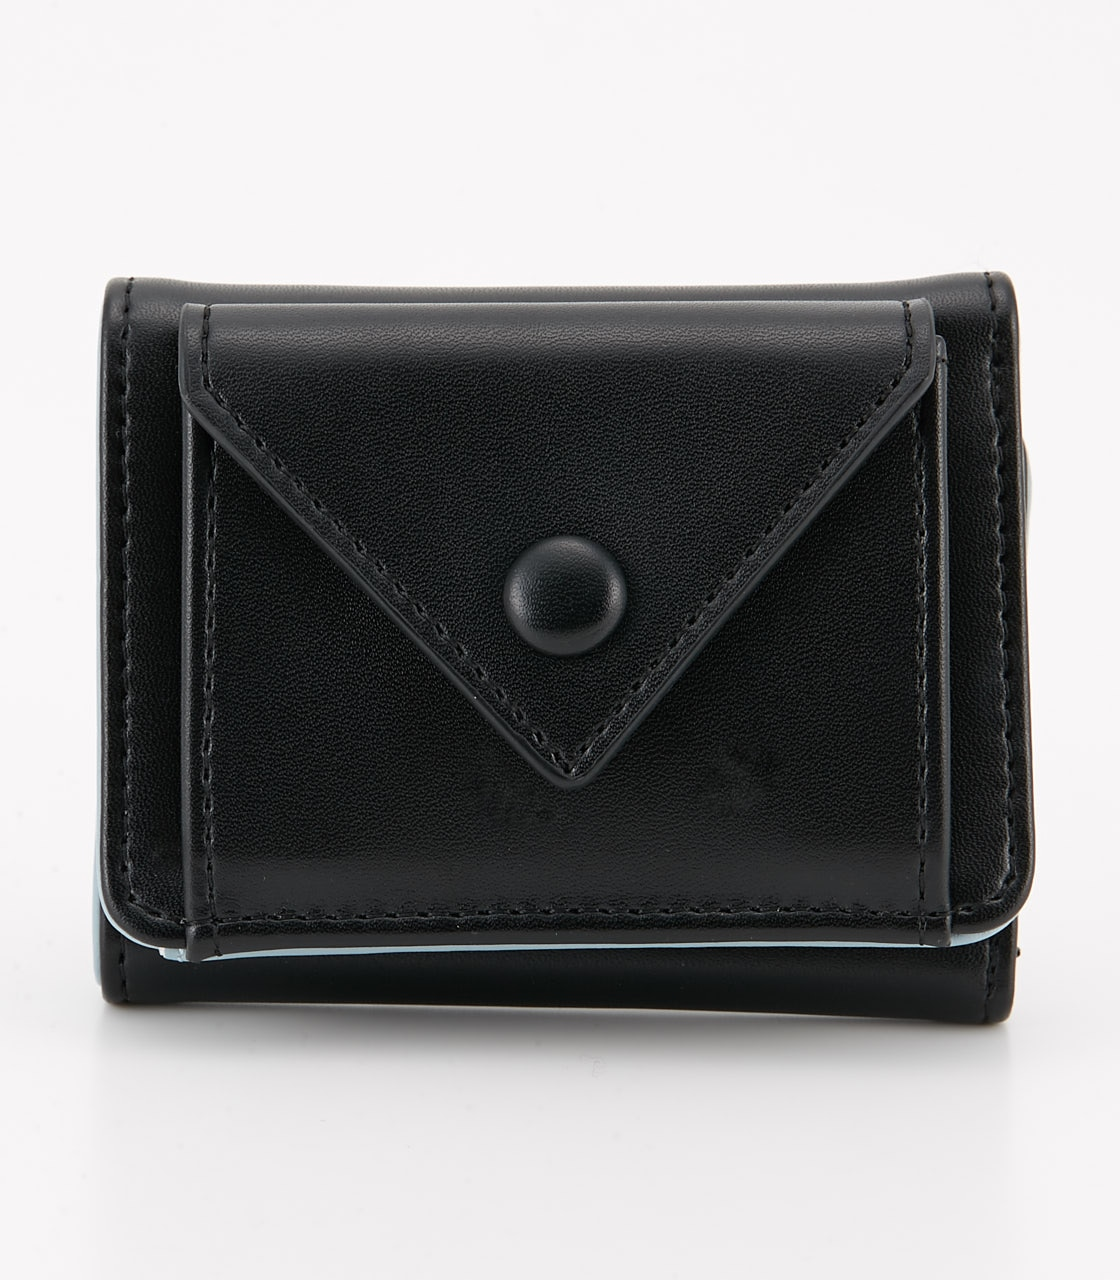 【AZUL BY MOUSSY】COLOR POINT COMPACT WALLET 詳細画像 BLK 1